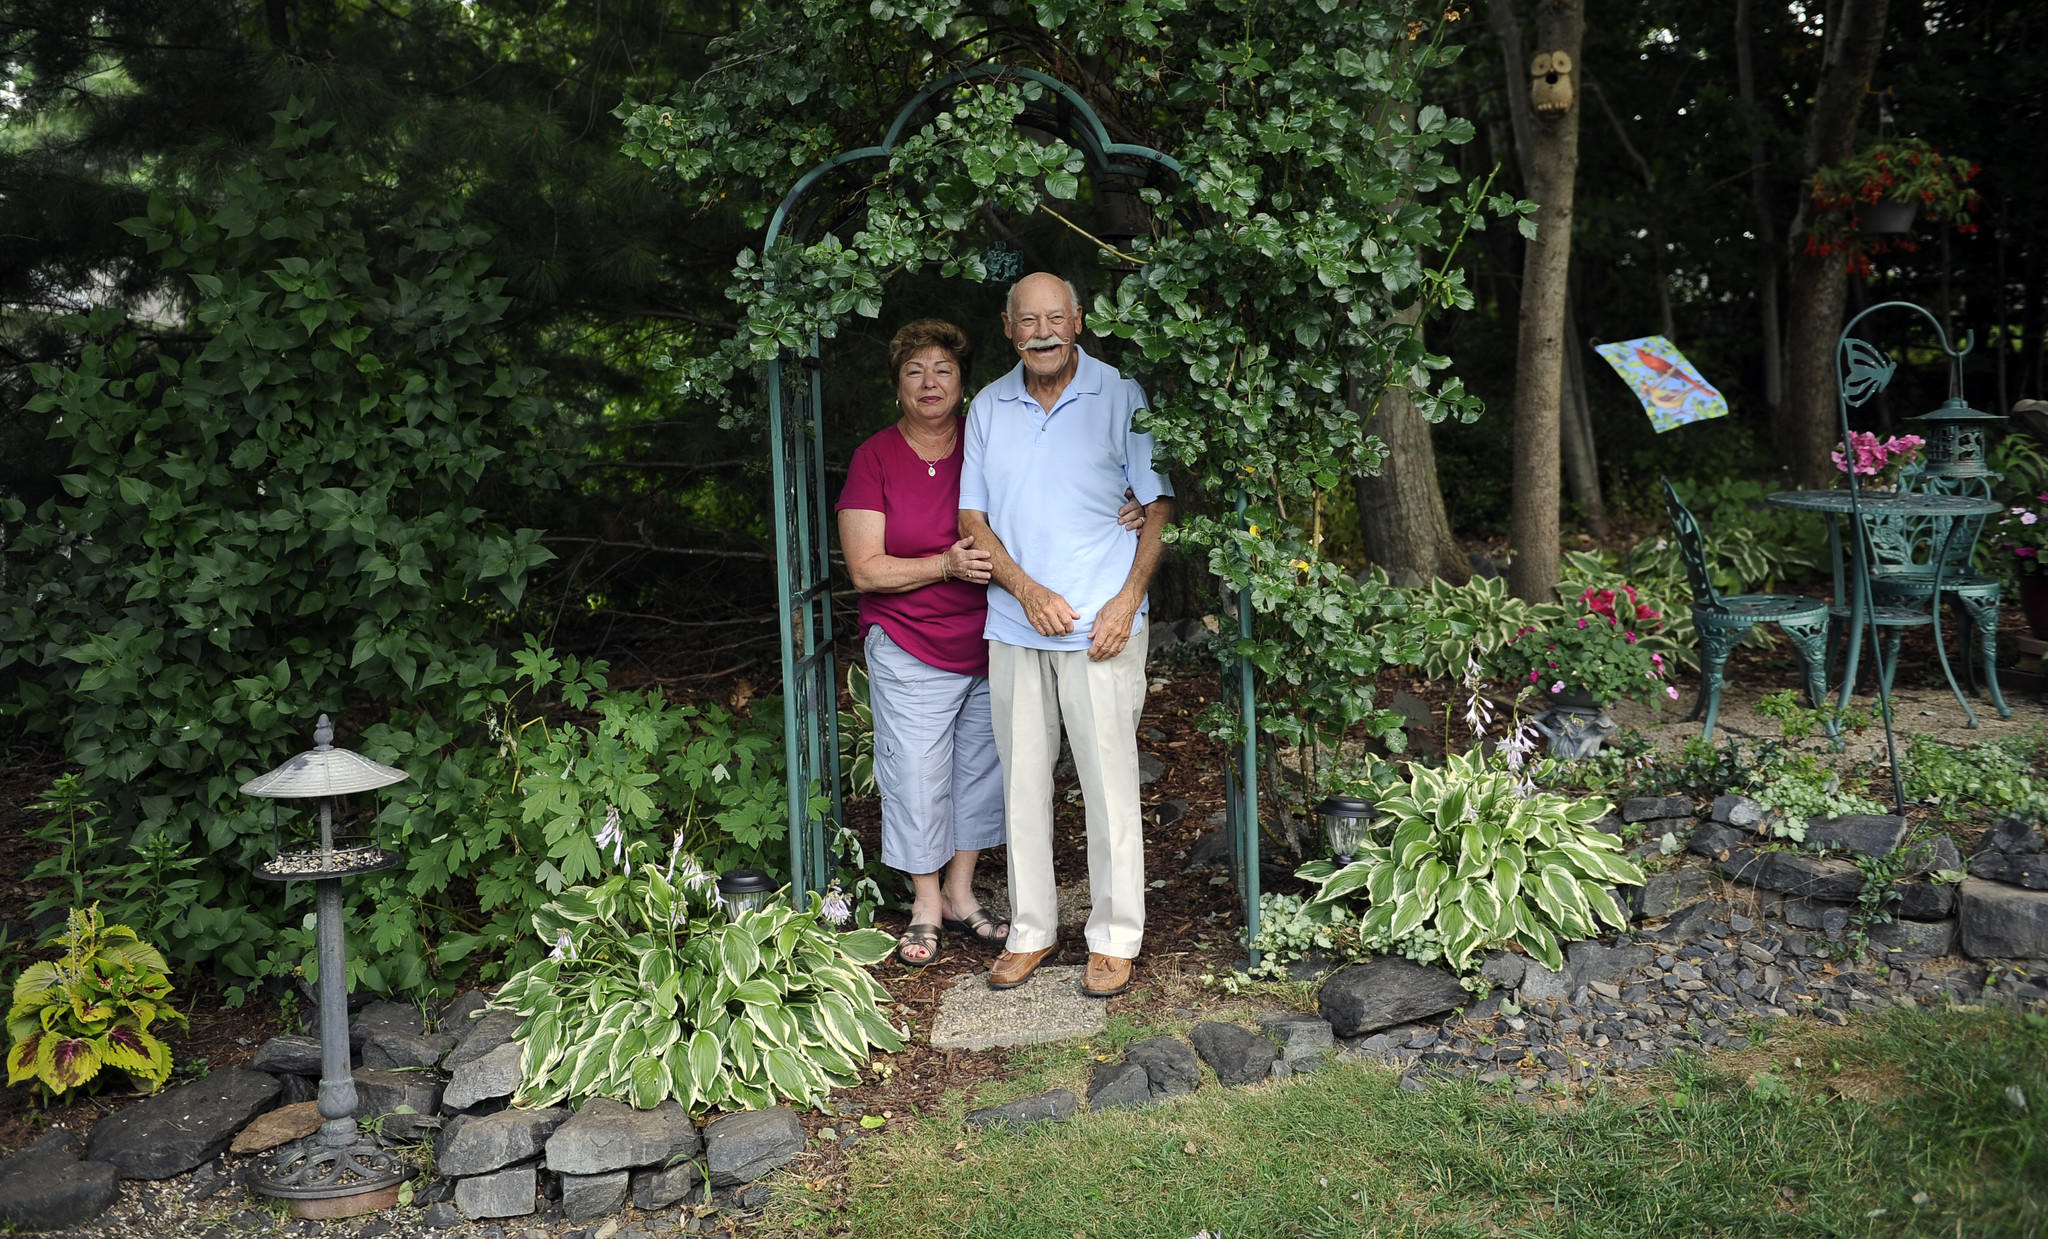 While not large, the Staylors' garden features an impressive variety of plants, including honeysuckle, peonies, weigela, crape myrtle, inkberry, wood poppy, vinca, lilac, hardy begonia, and an unusual double-blossom oakleaf hydrangea.